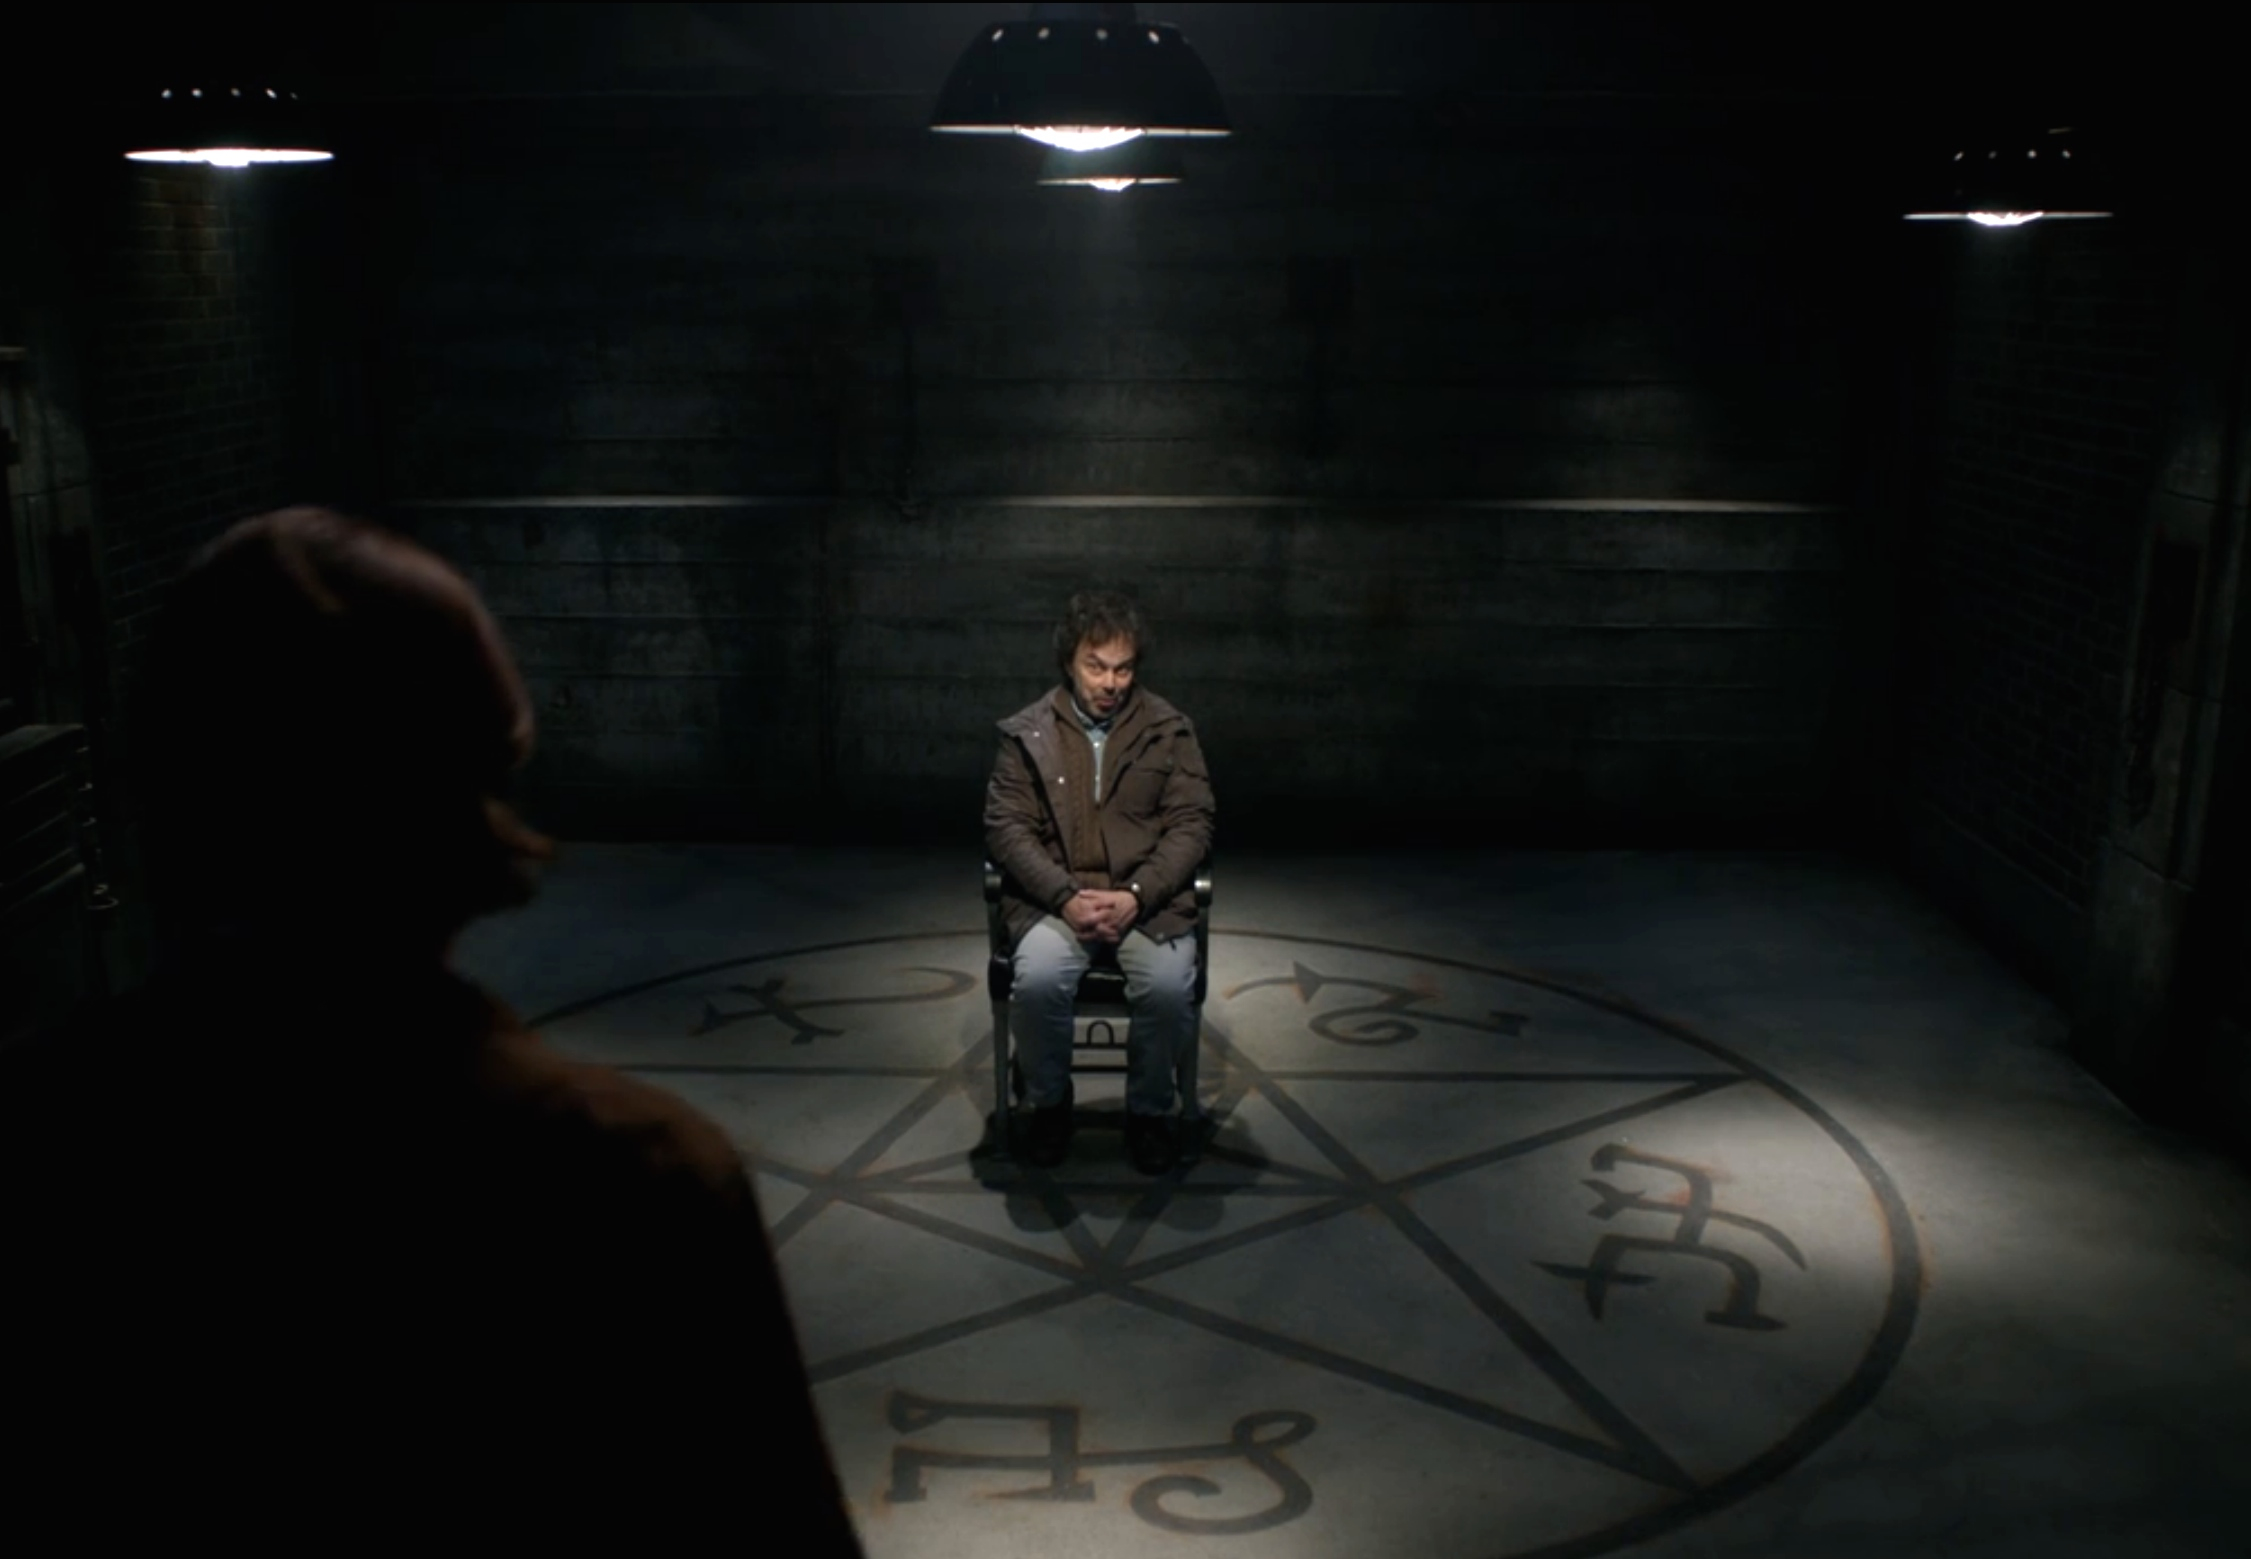 men of letters metatron in the of letters bunker the 23615 | metatron in the men of letters bunker the hunter games supernatural